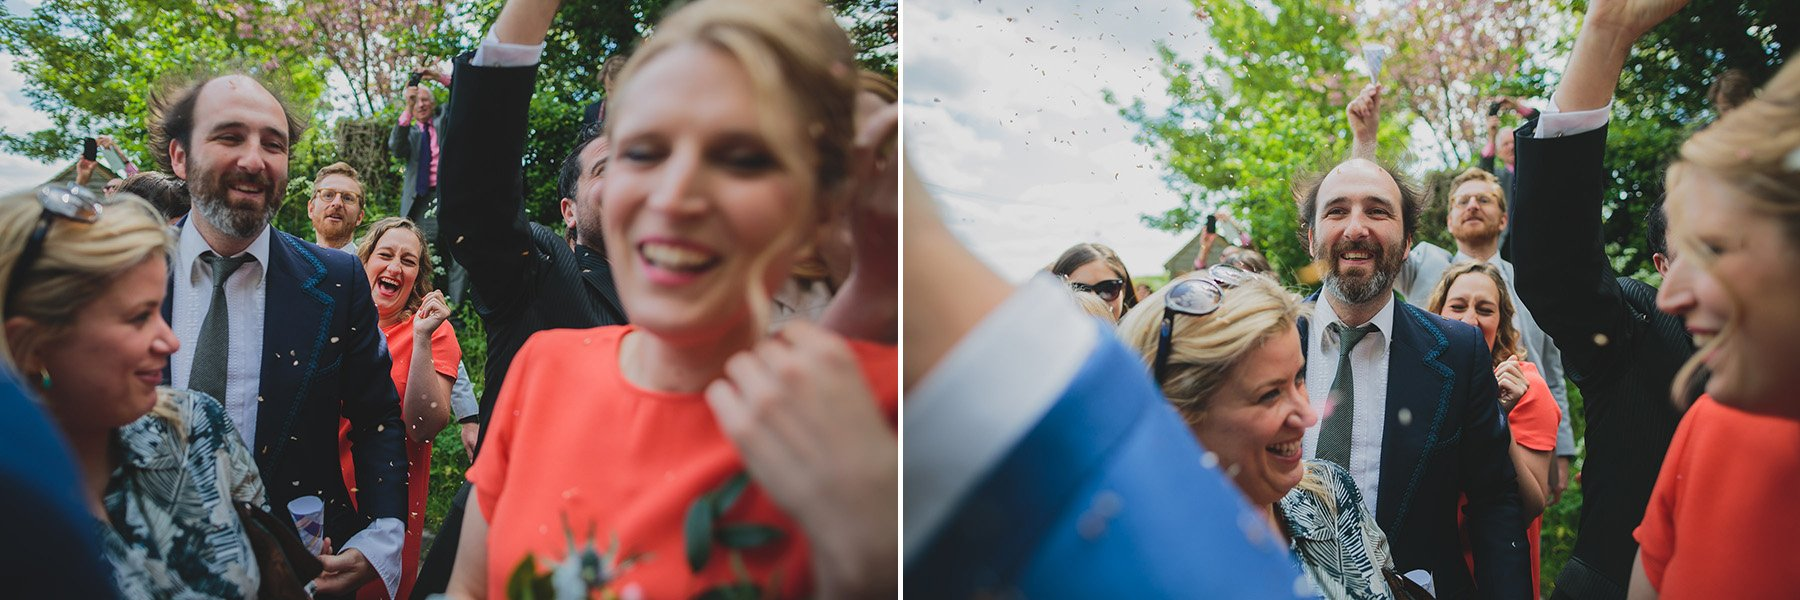 Buckinghamshire-Wedding-Lizzie-Duncan-085